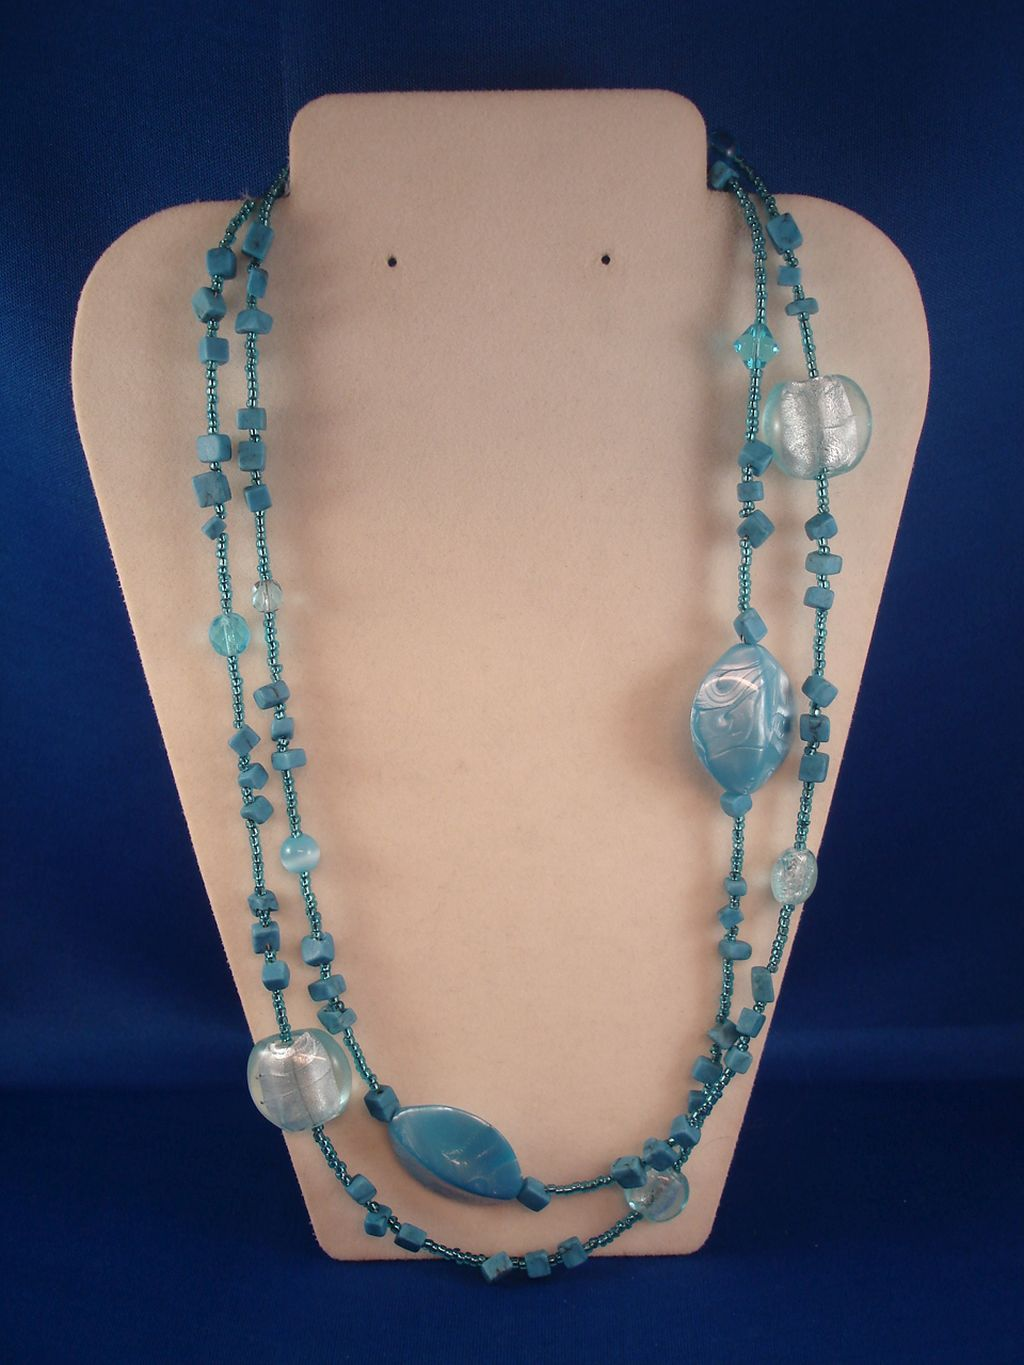 "42"" Turquoise / Sky Blue Necklace, Genuine Stones, Stained Glass, Beads, European Fashion Jewelry"